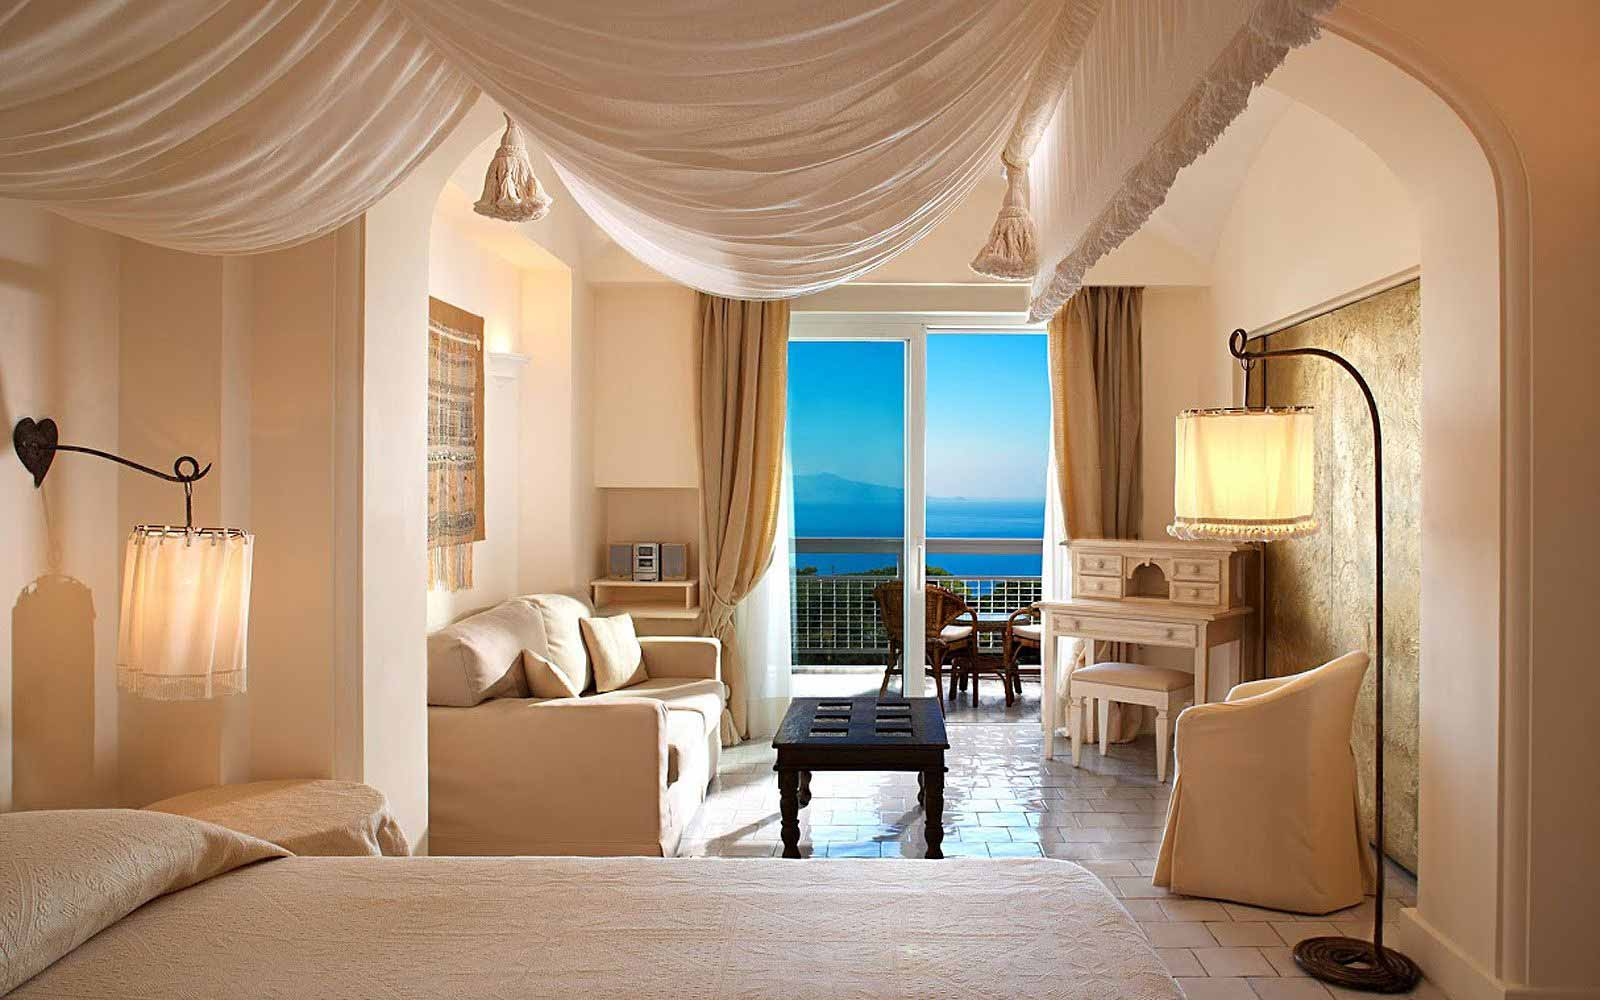 Deluxe Room with seaview at Capri Palace Hotel & Spa